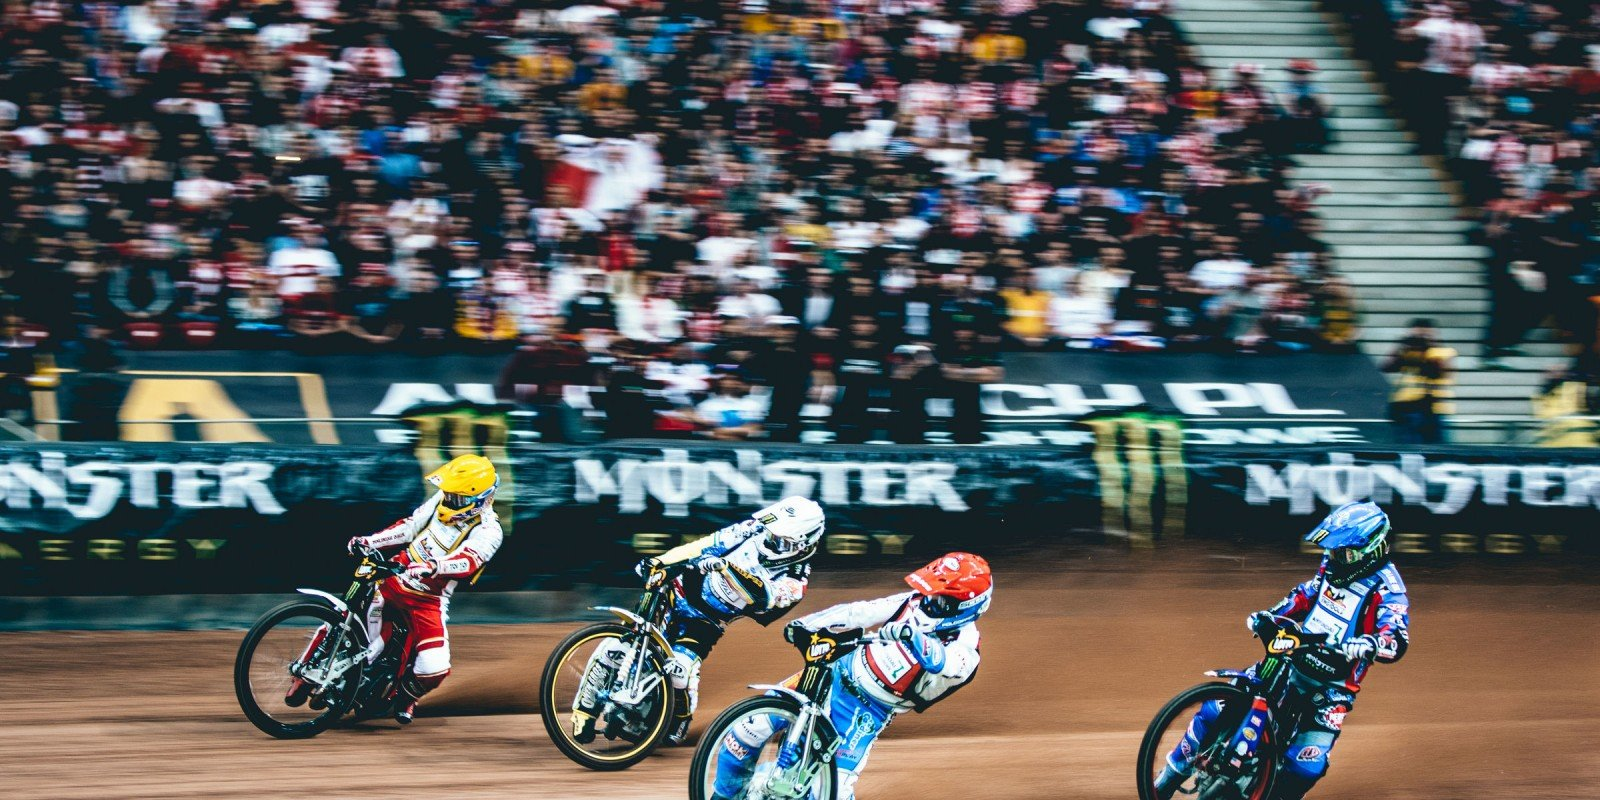 Images of Chris holder from the Warsaw SGP